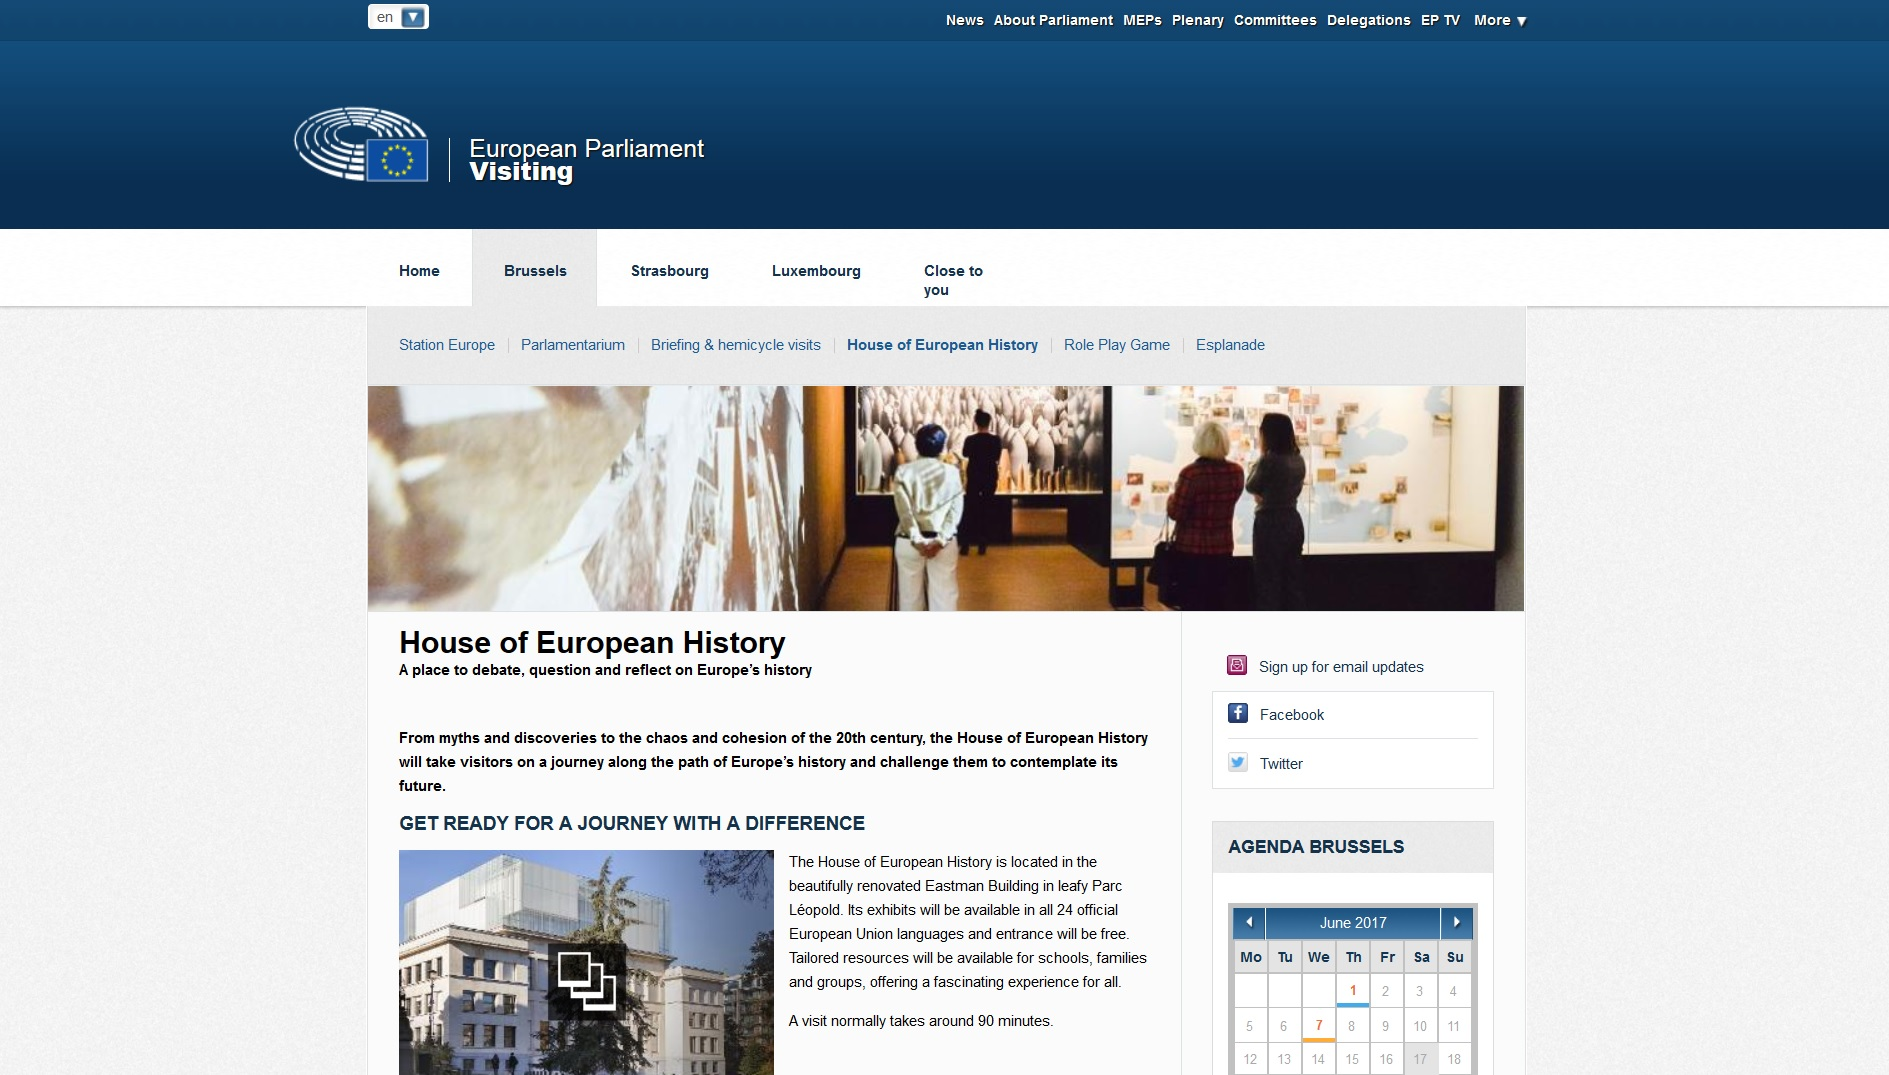 Screenshot House of European History: http://www.europarl.europa.eu/visiting/en/brussels/house-of-european-history